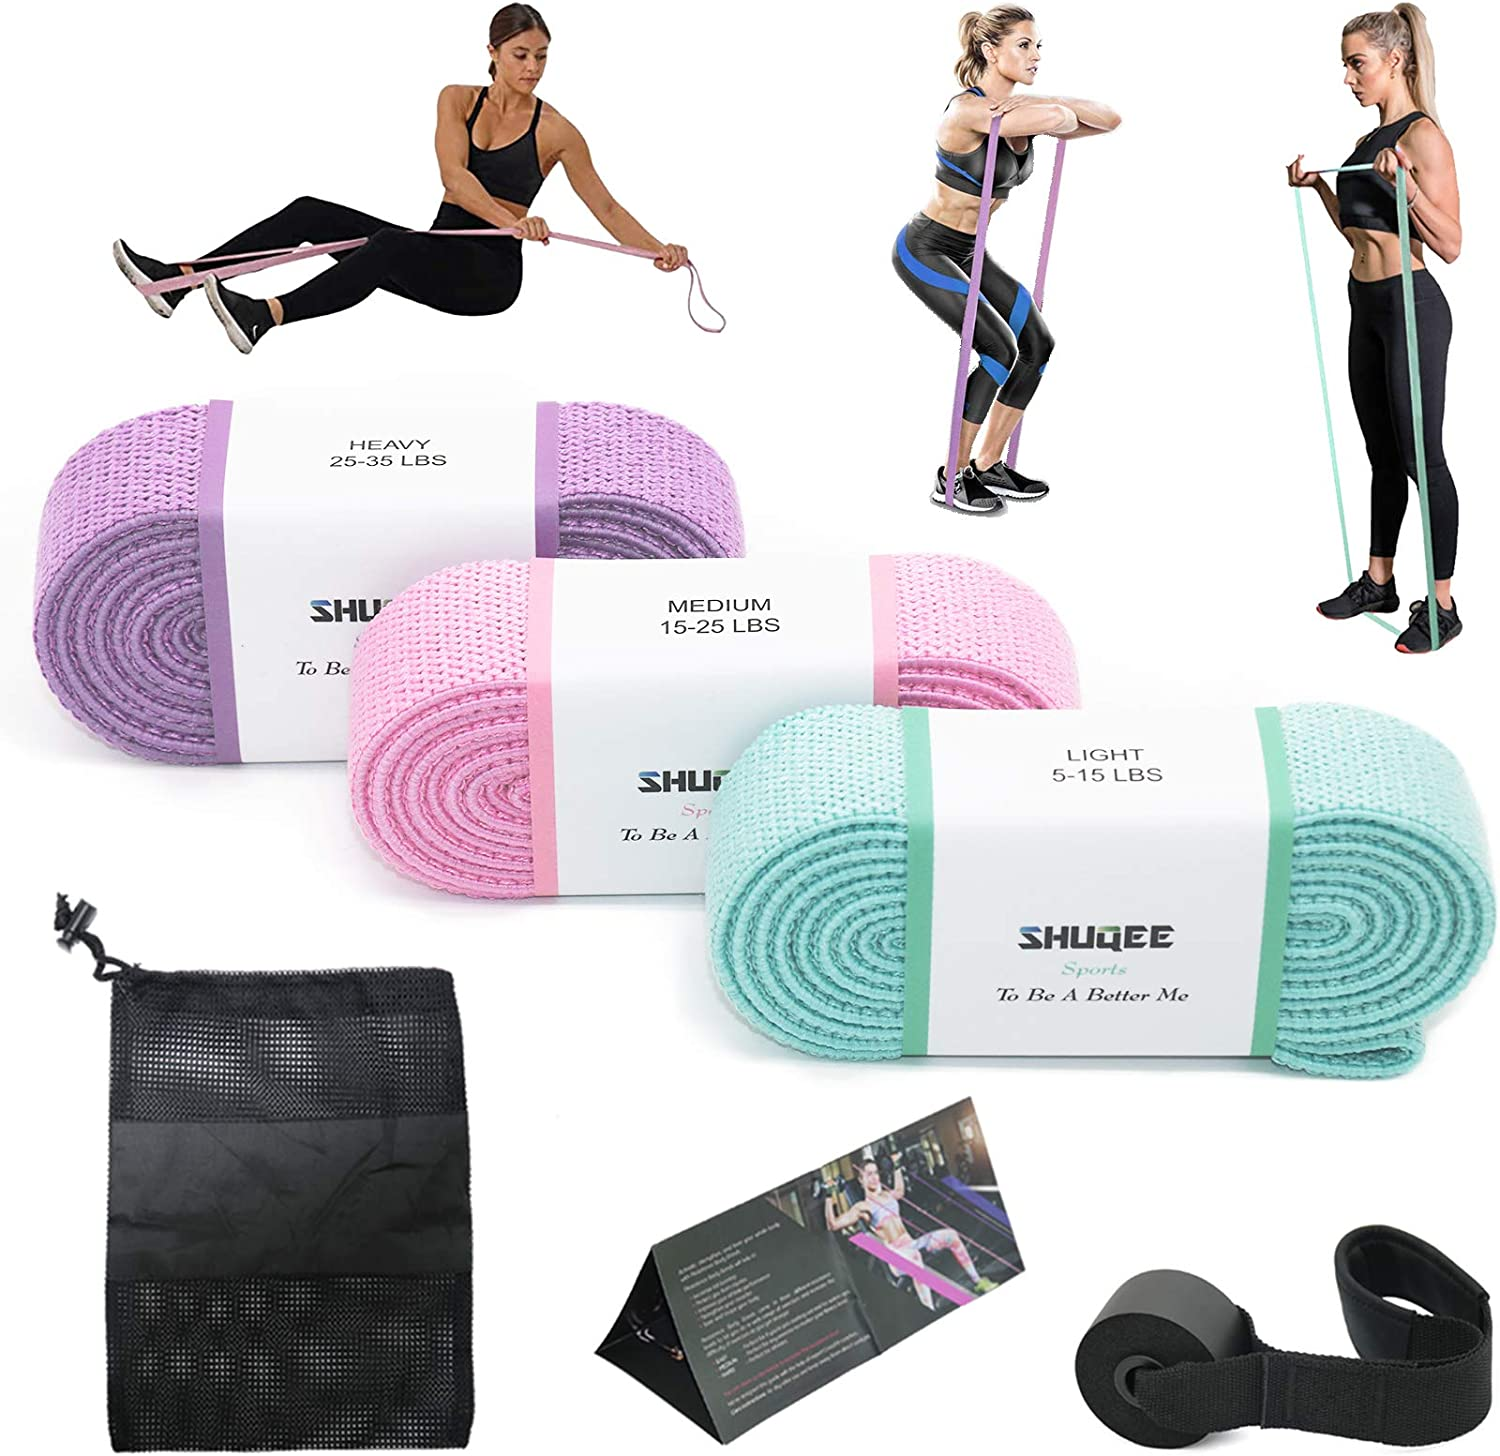 SHUQEE Max 42% OFF Long Fabric Resistance Loop Bands Set of - Special Campaign 3 Body Ex Full